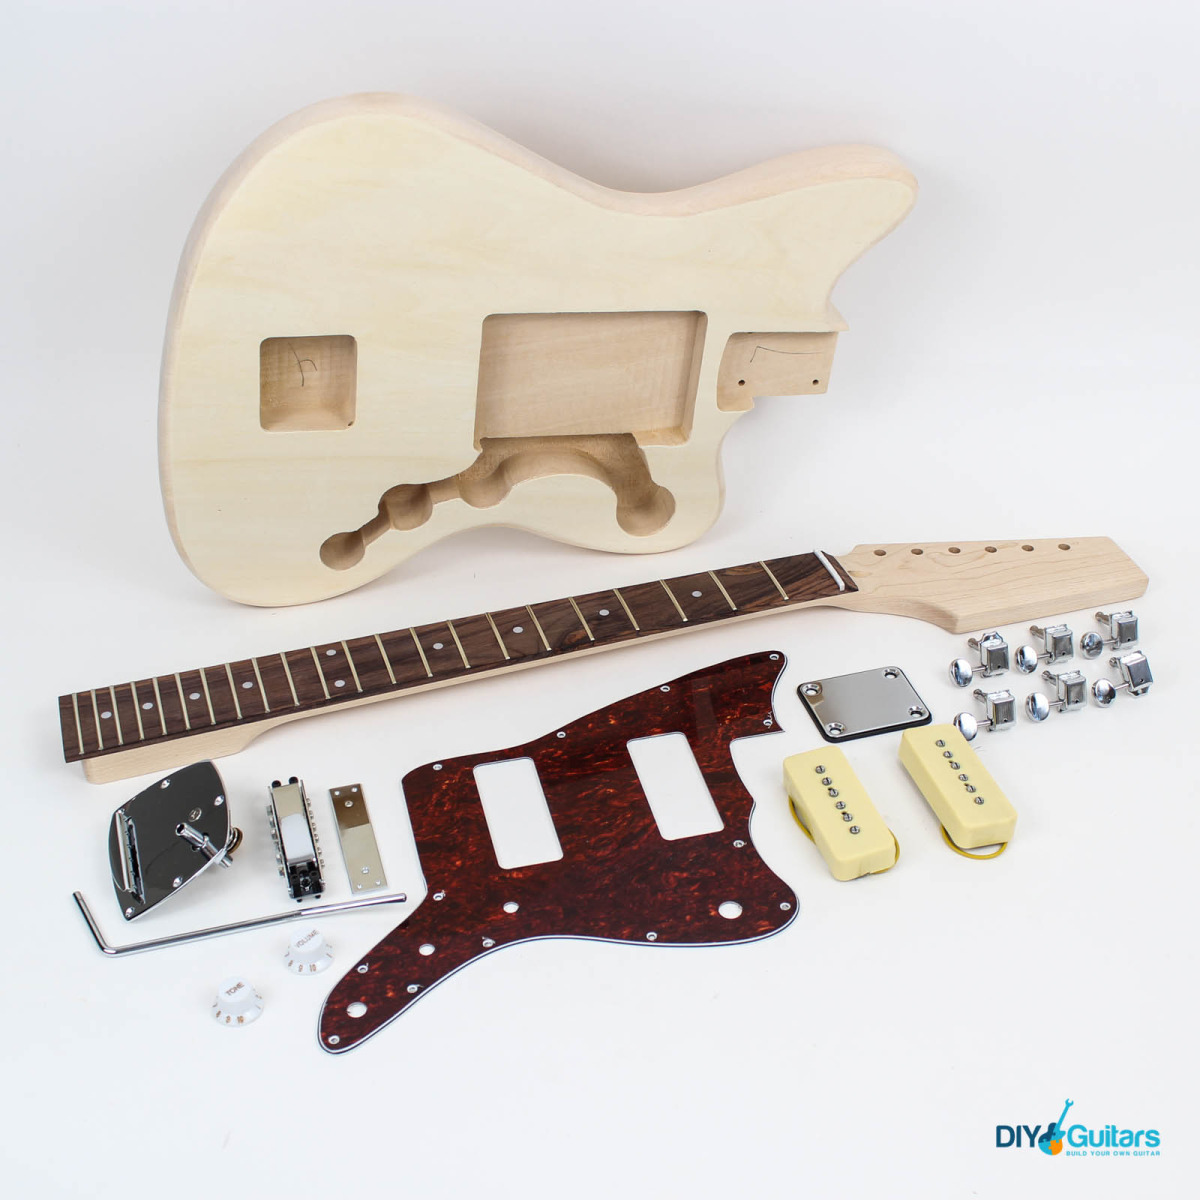 Jazzmaster style guitar kit diy guitars main components solutioingenieria Gallery